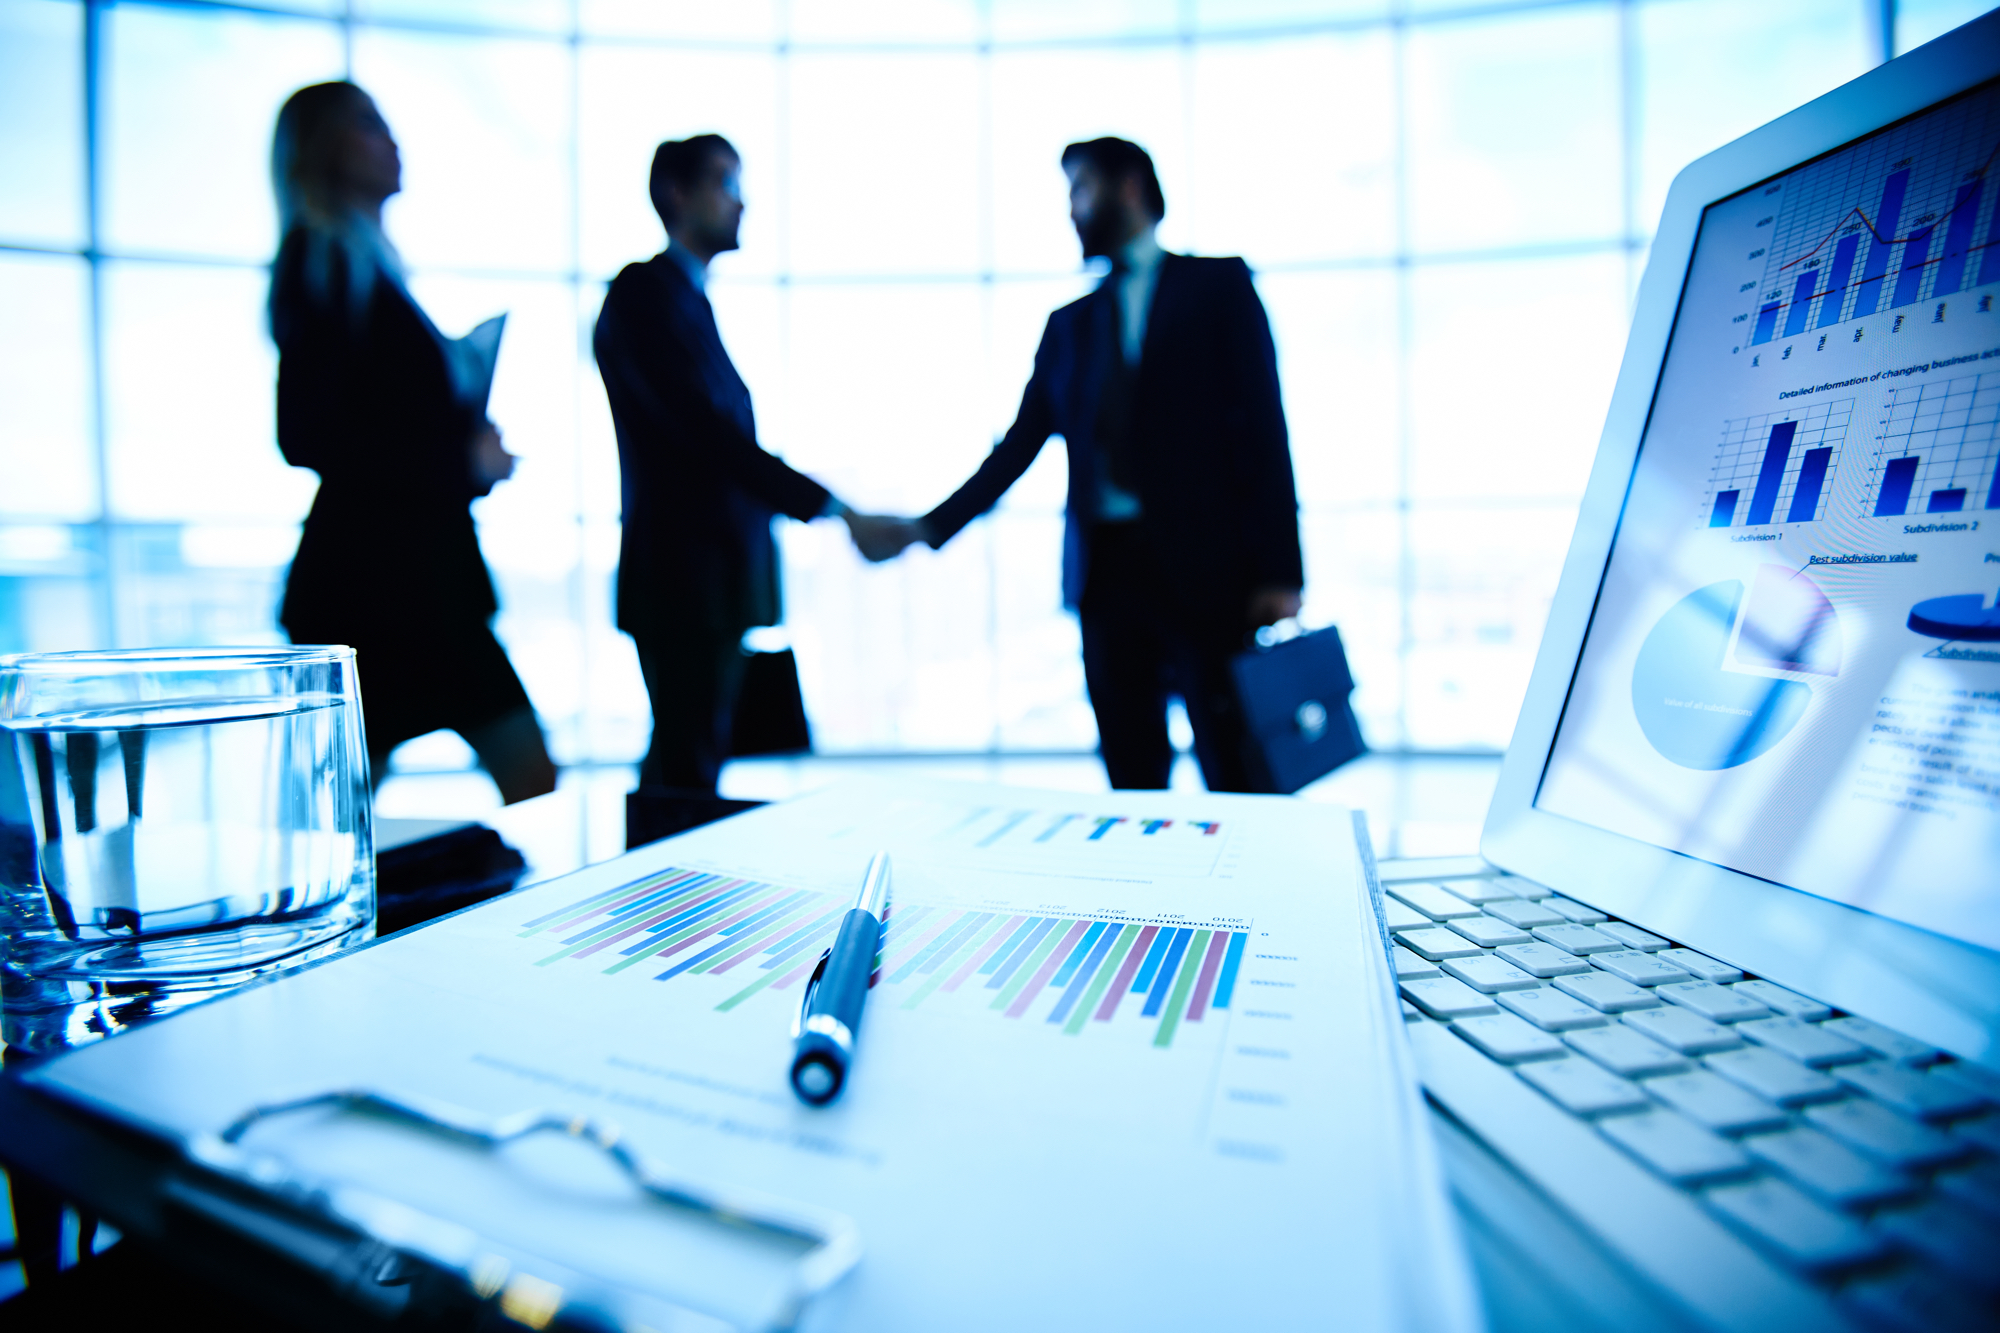 Negotiations - Any broker can search, place an offer, and hand you keys a month later. How BH Group brokers differ is how we keep you safe before, during, and after the transaction. We prepare for, strategize, and negotiate throughout the entire transaction to keep you safe - And we are excellent at it. Like a grandmaster in chess, we keep an eye 15-moves ahead to prepare for any hurdles before getting to them. And yes, you'll hear a lot of these analogies as I ran track and played chess competitively.